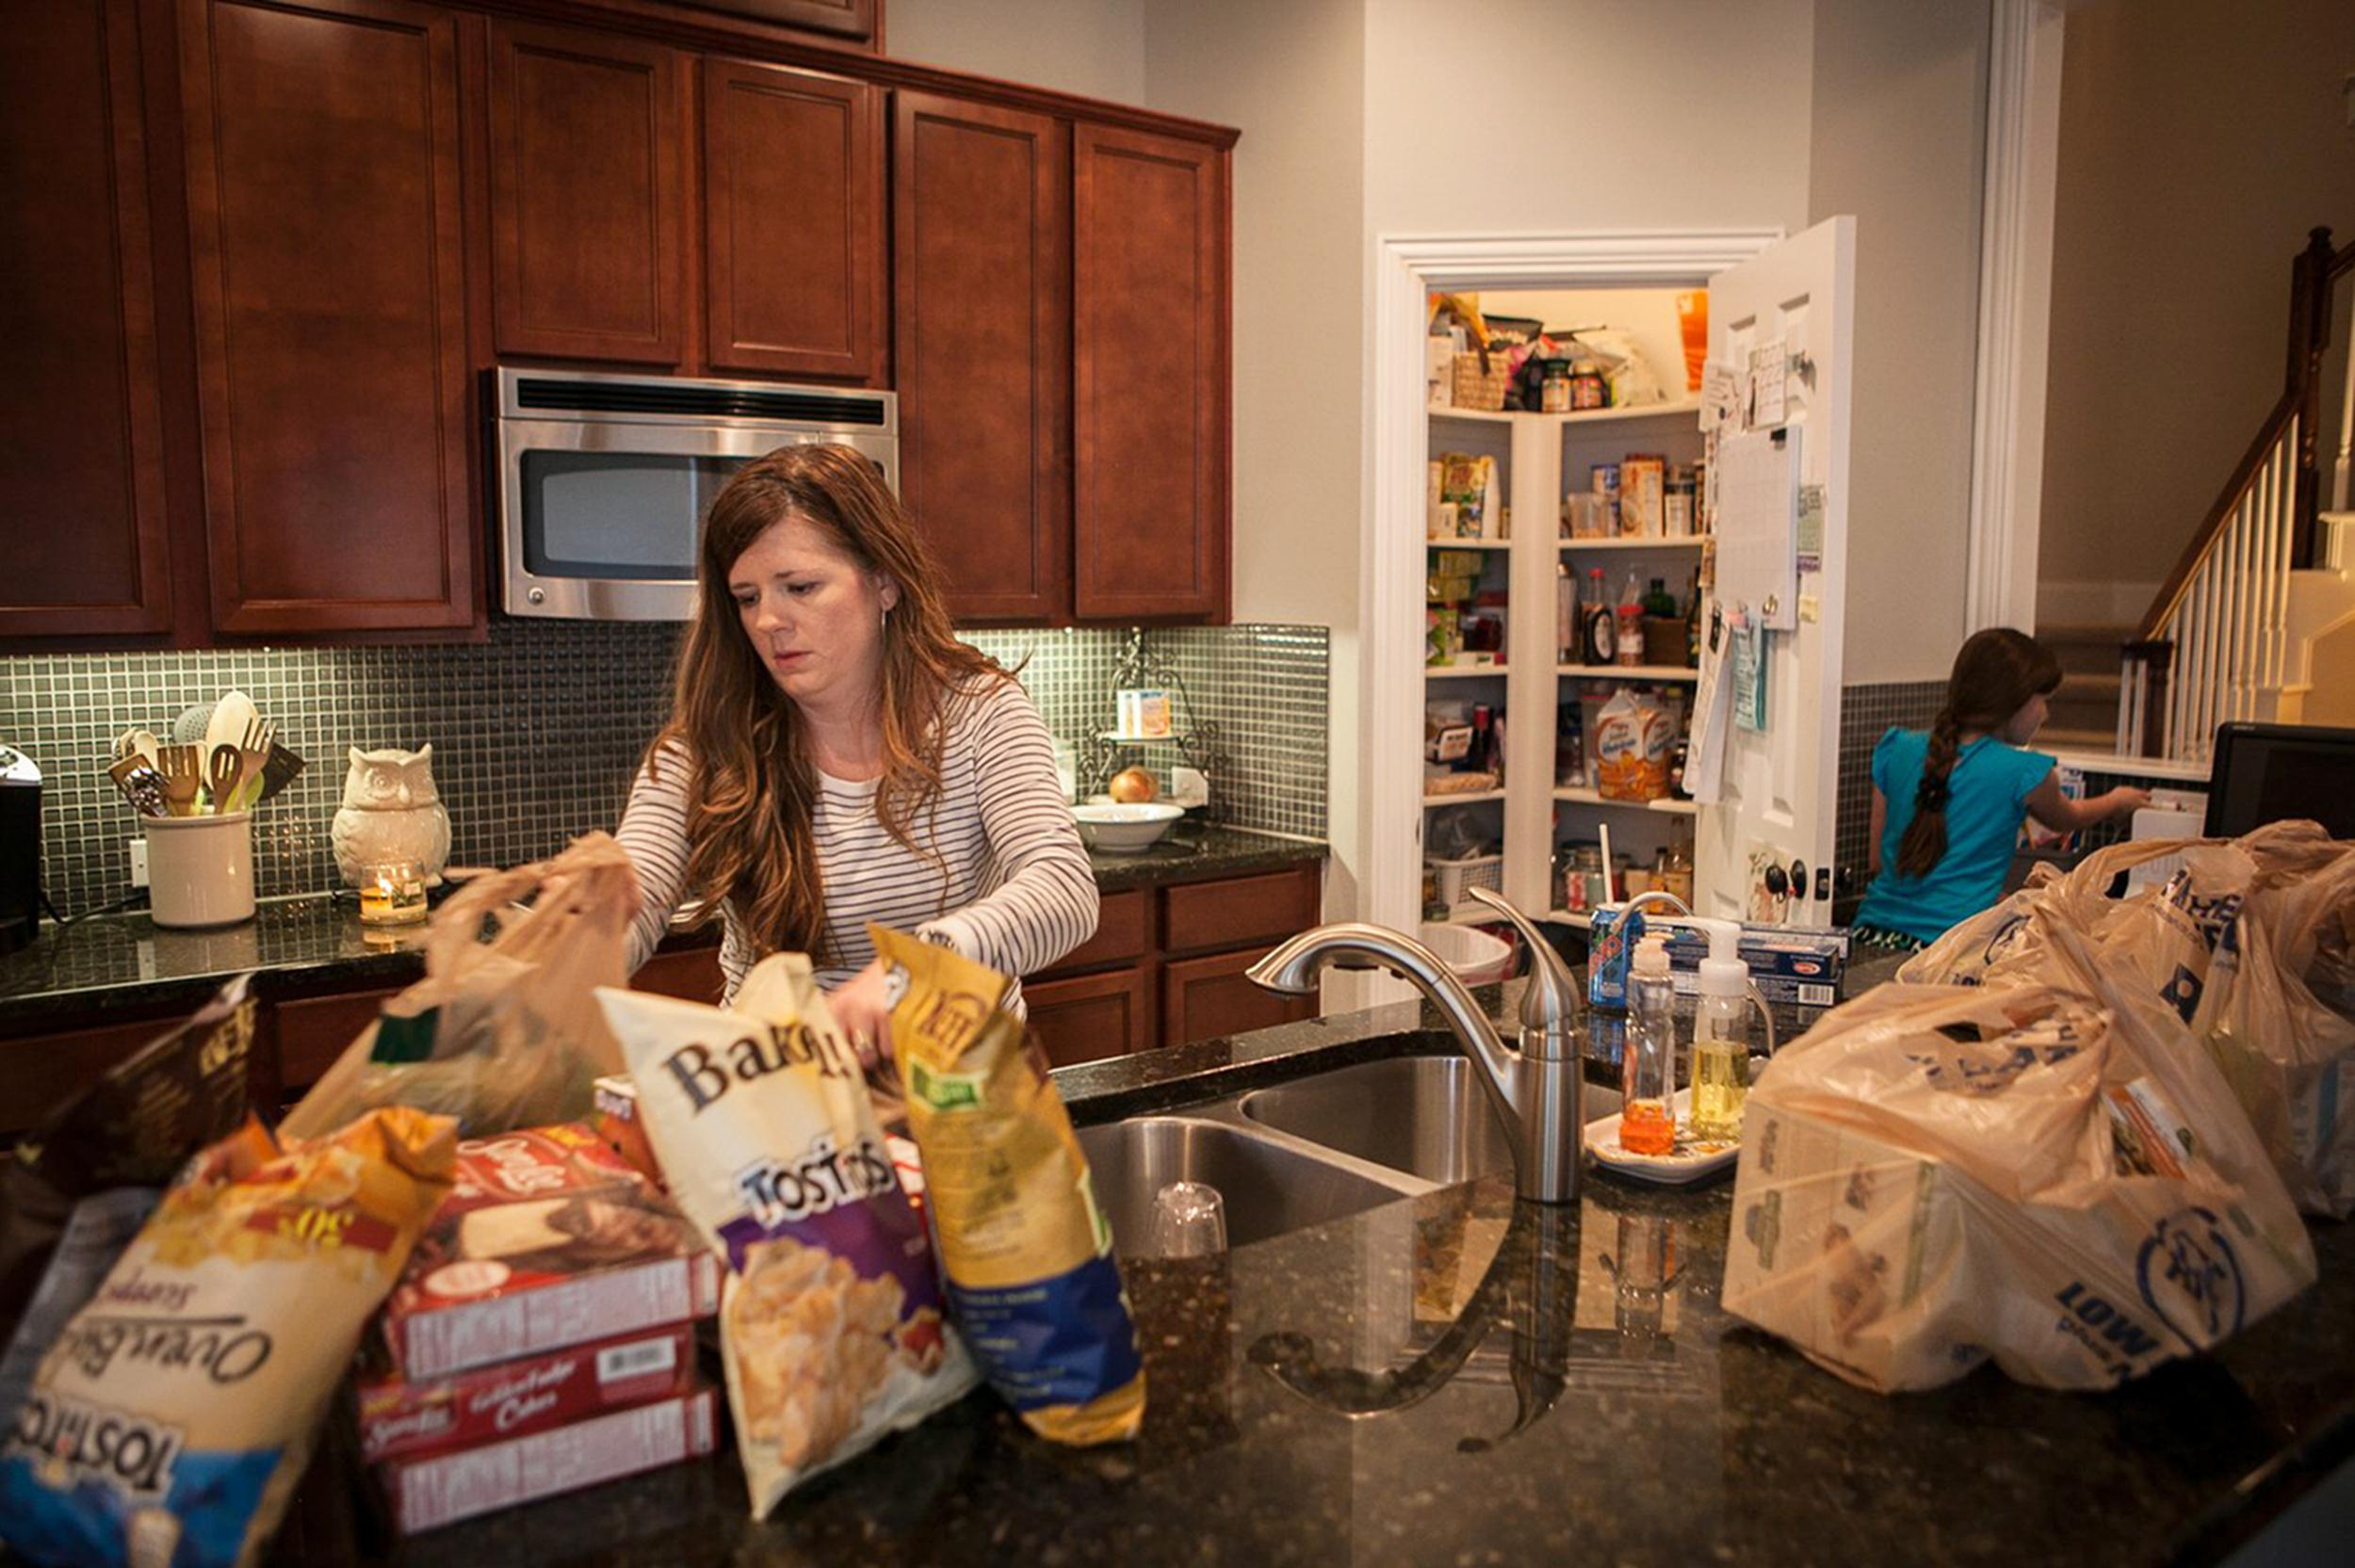 Image: Alice Korey, left, mother of three, unpacks grocery bags from Kroger and uses coupon apps on her iPhone to cut costs of rising food prices at grocery stores